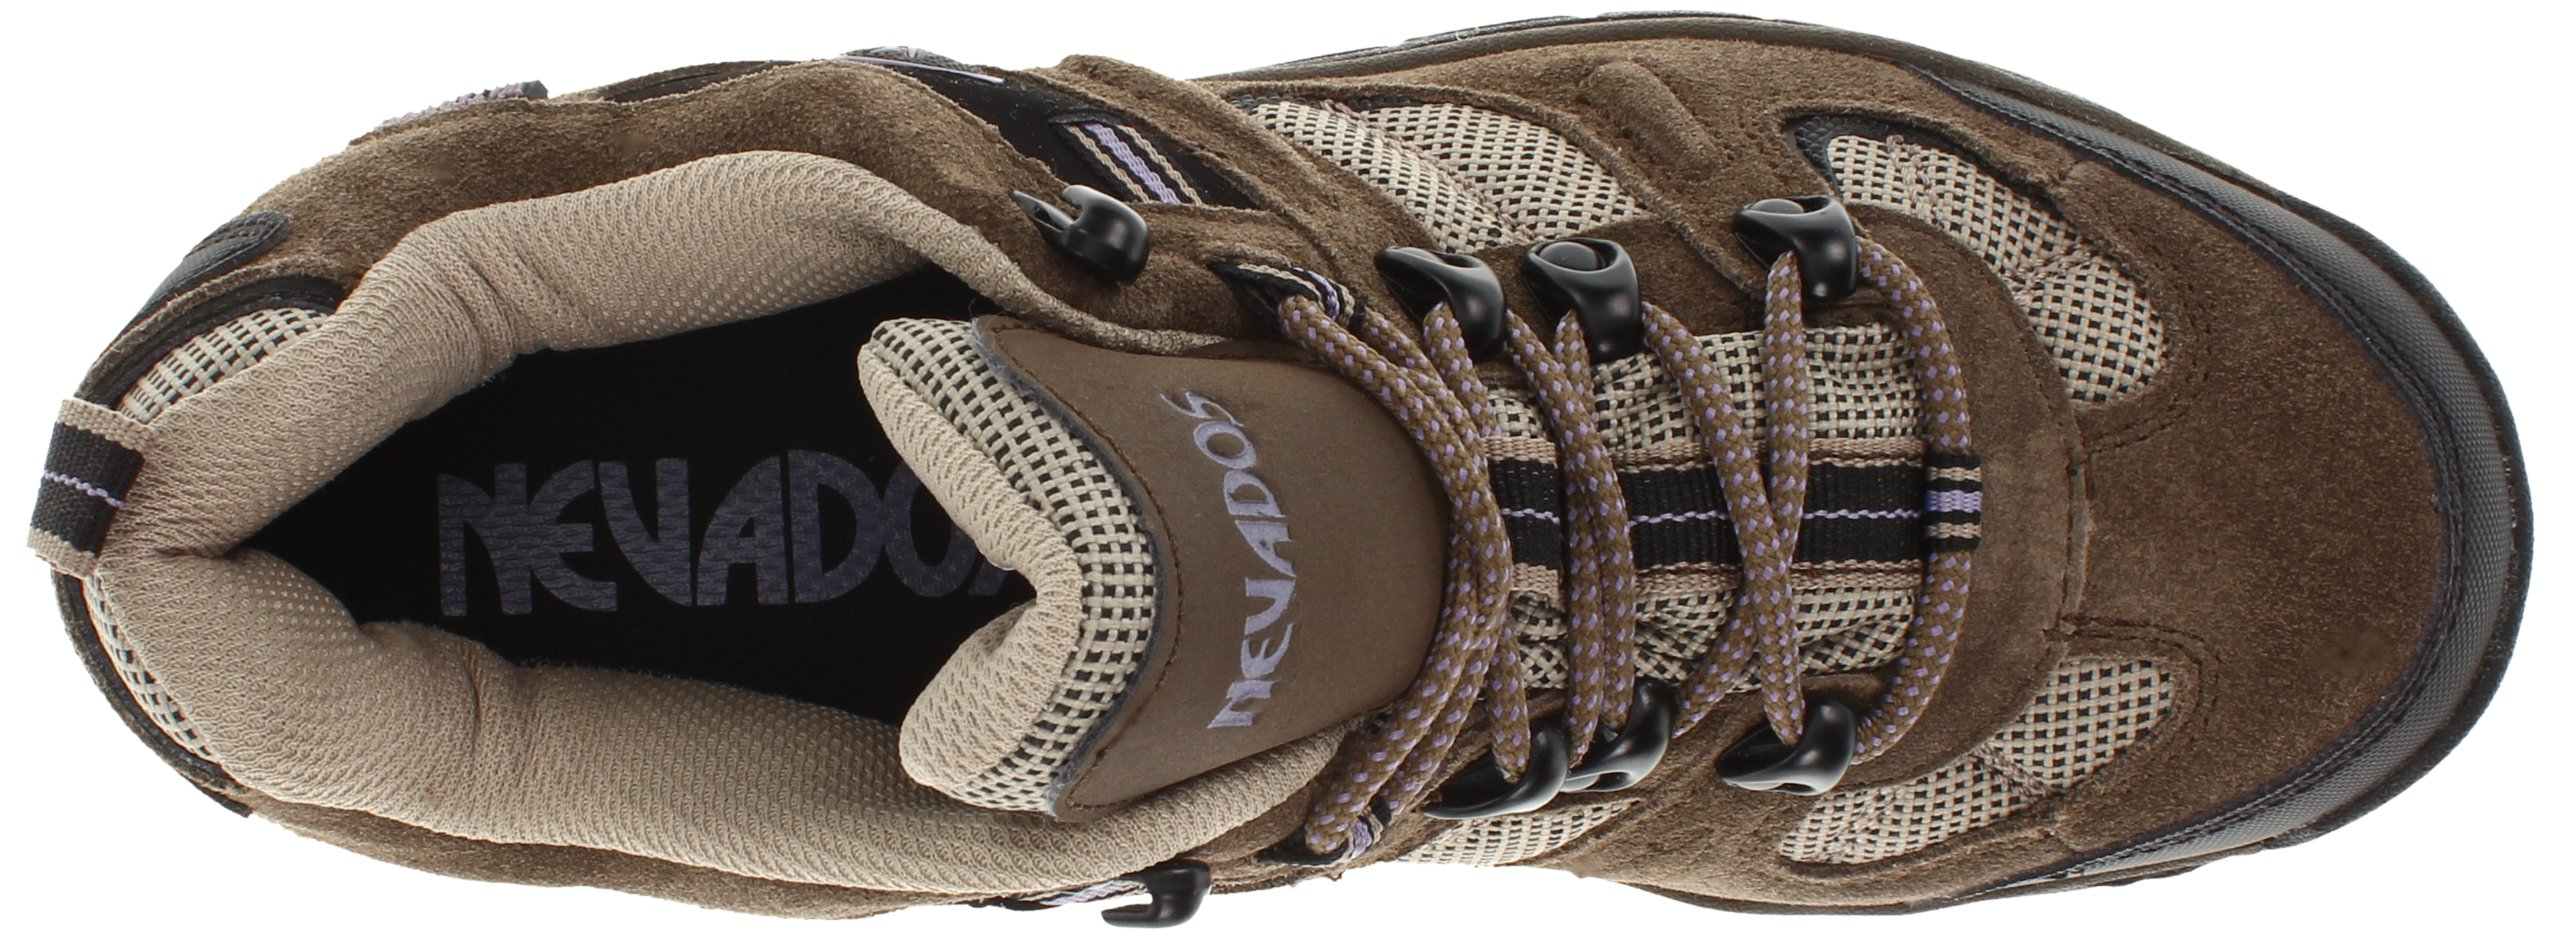 Nevados Women's Klondike Waterproof Low V4161W Hiking Boot,Dark Brown/Black/Taupe,9.5 M US by Nevados (Image #7)